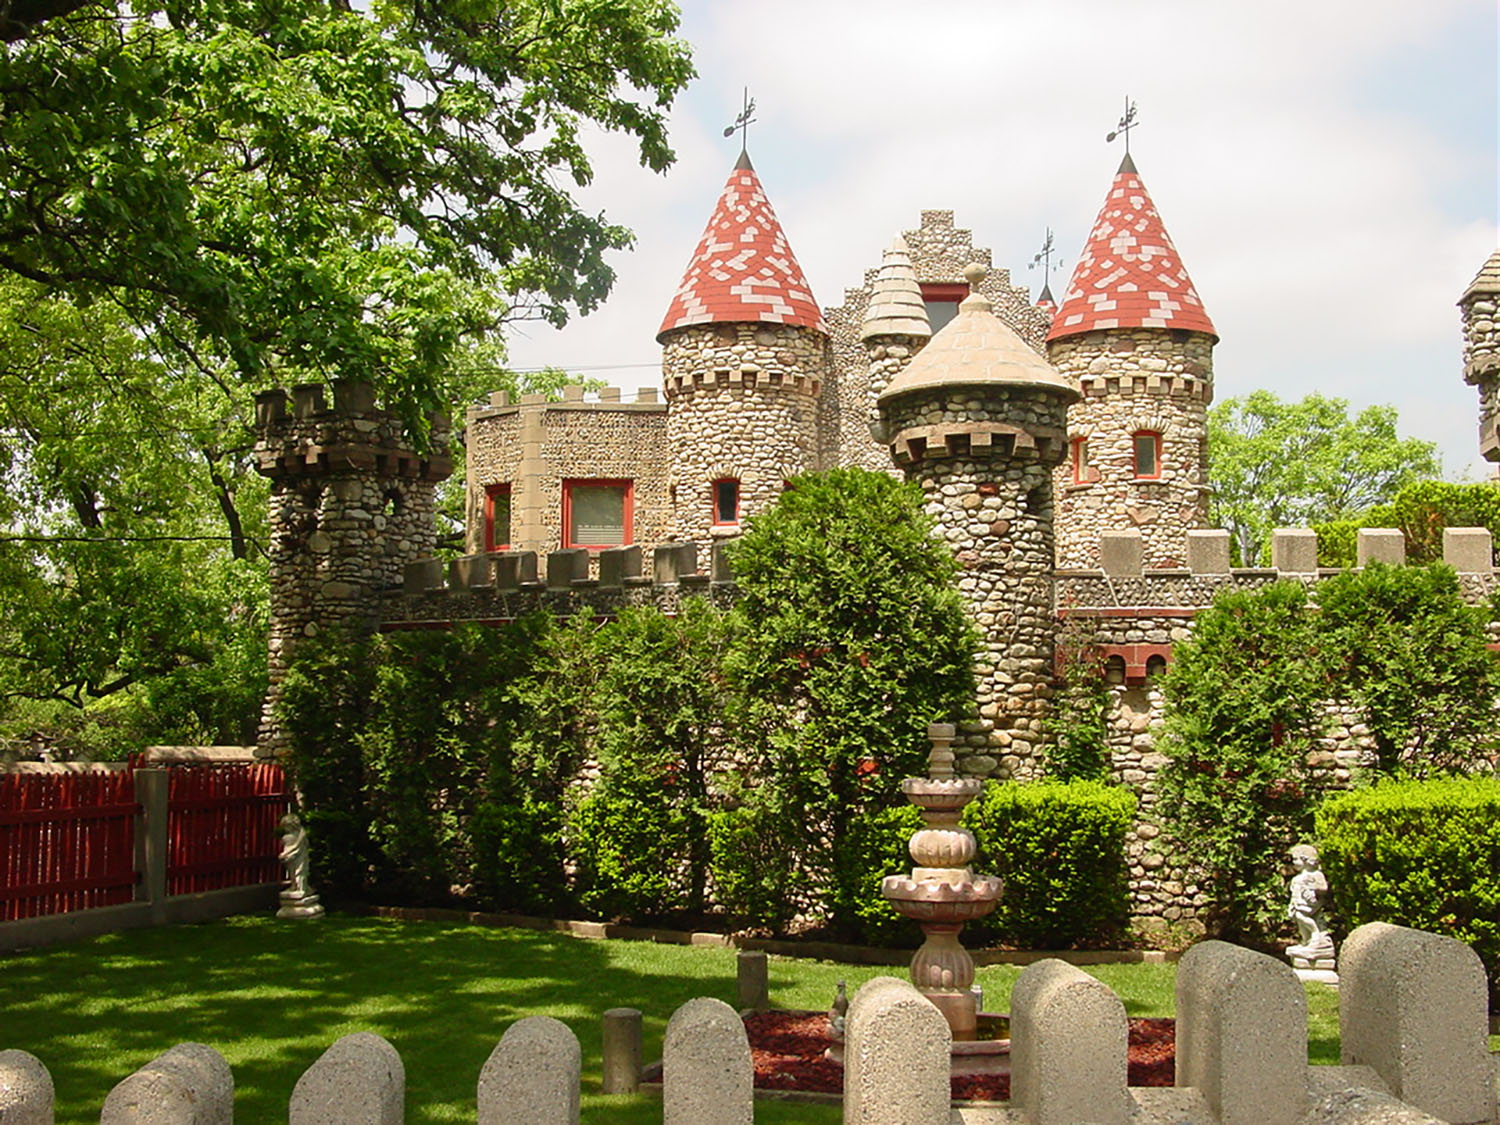 The Bettendorf Castle